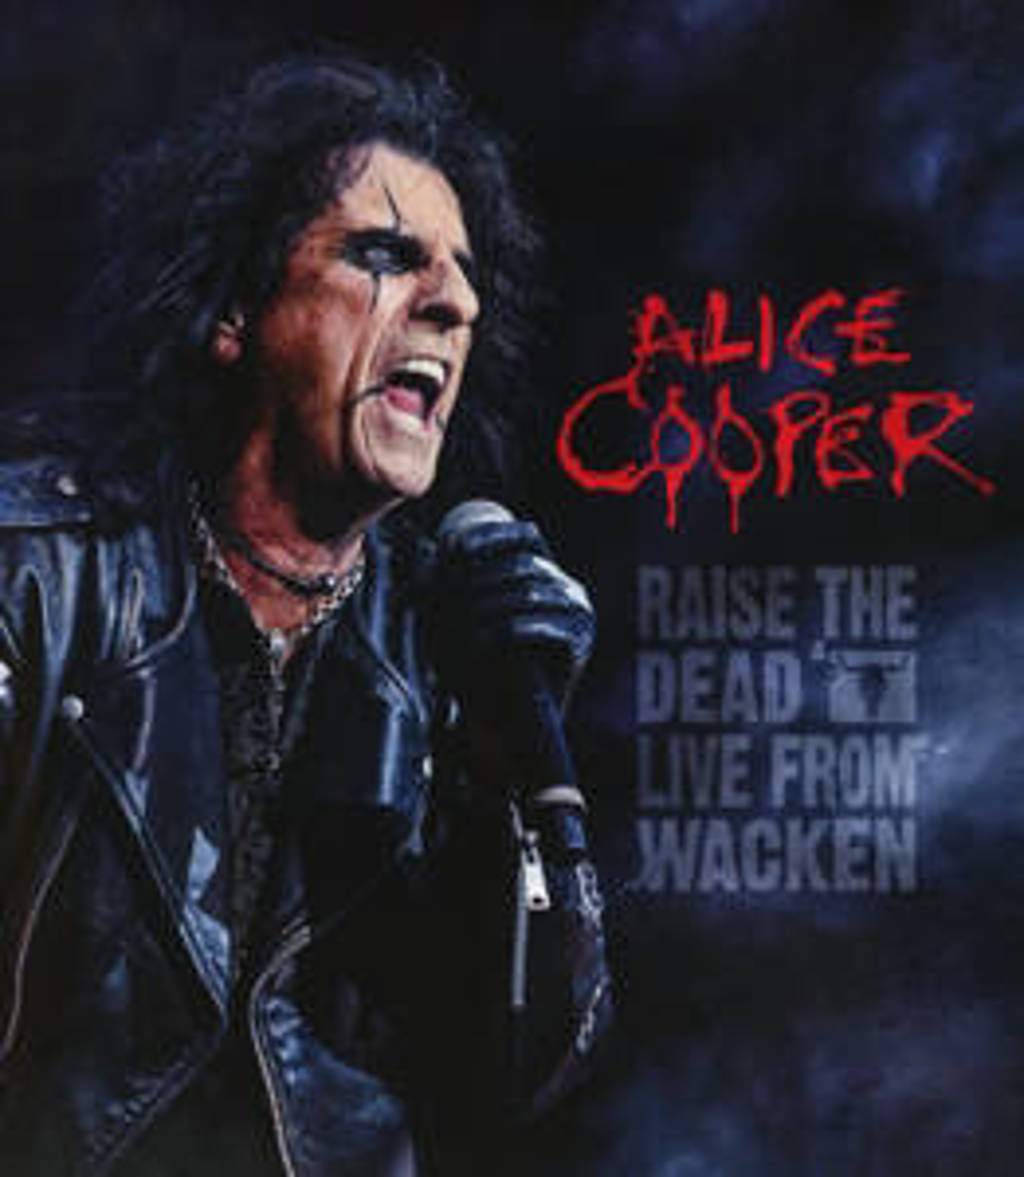 Alice Cooper - Alice Cooper - Raise The Dead (Blu-ray)